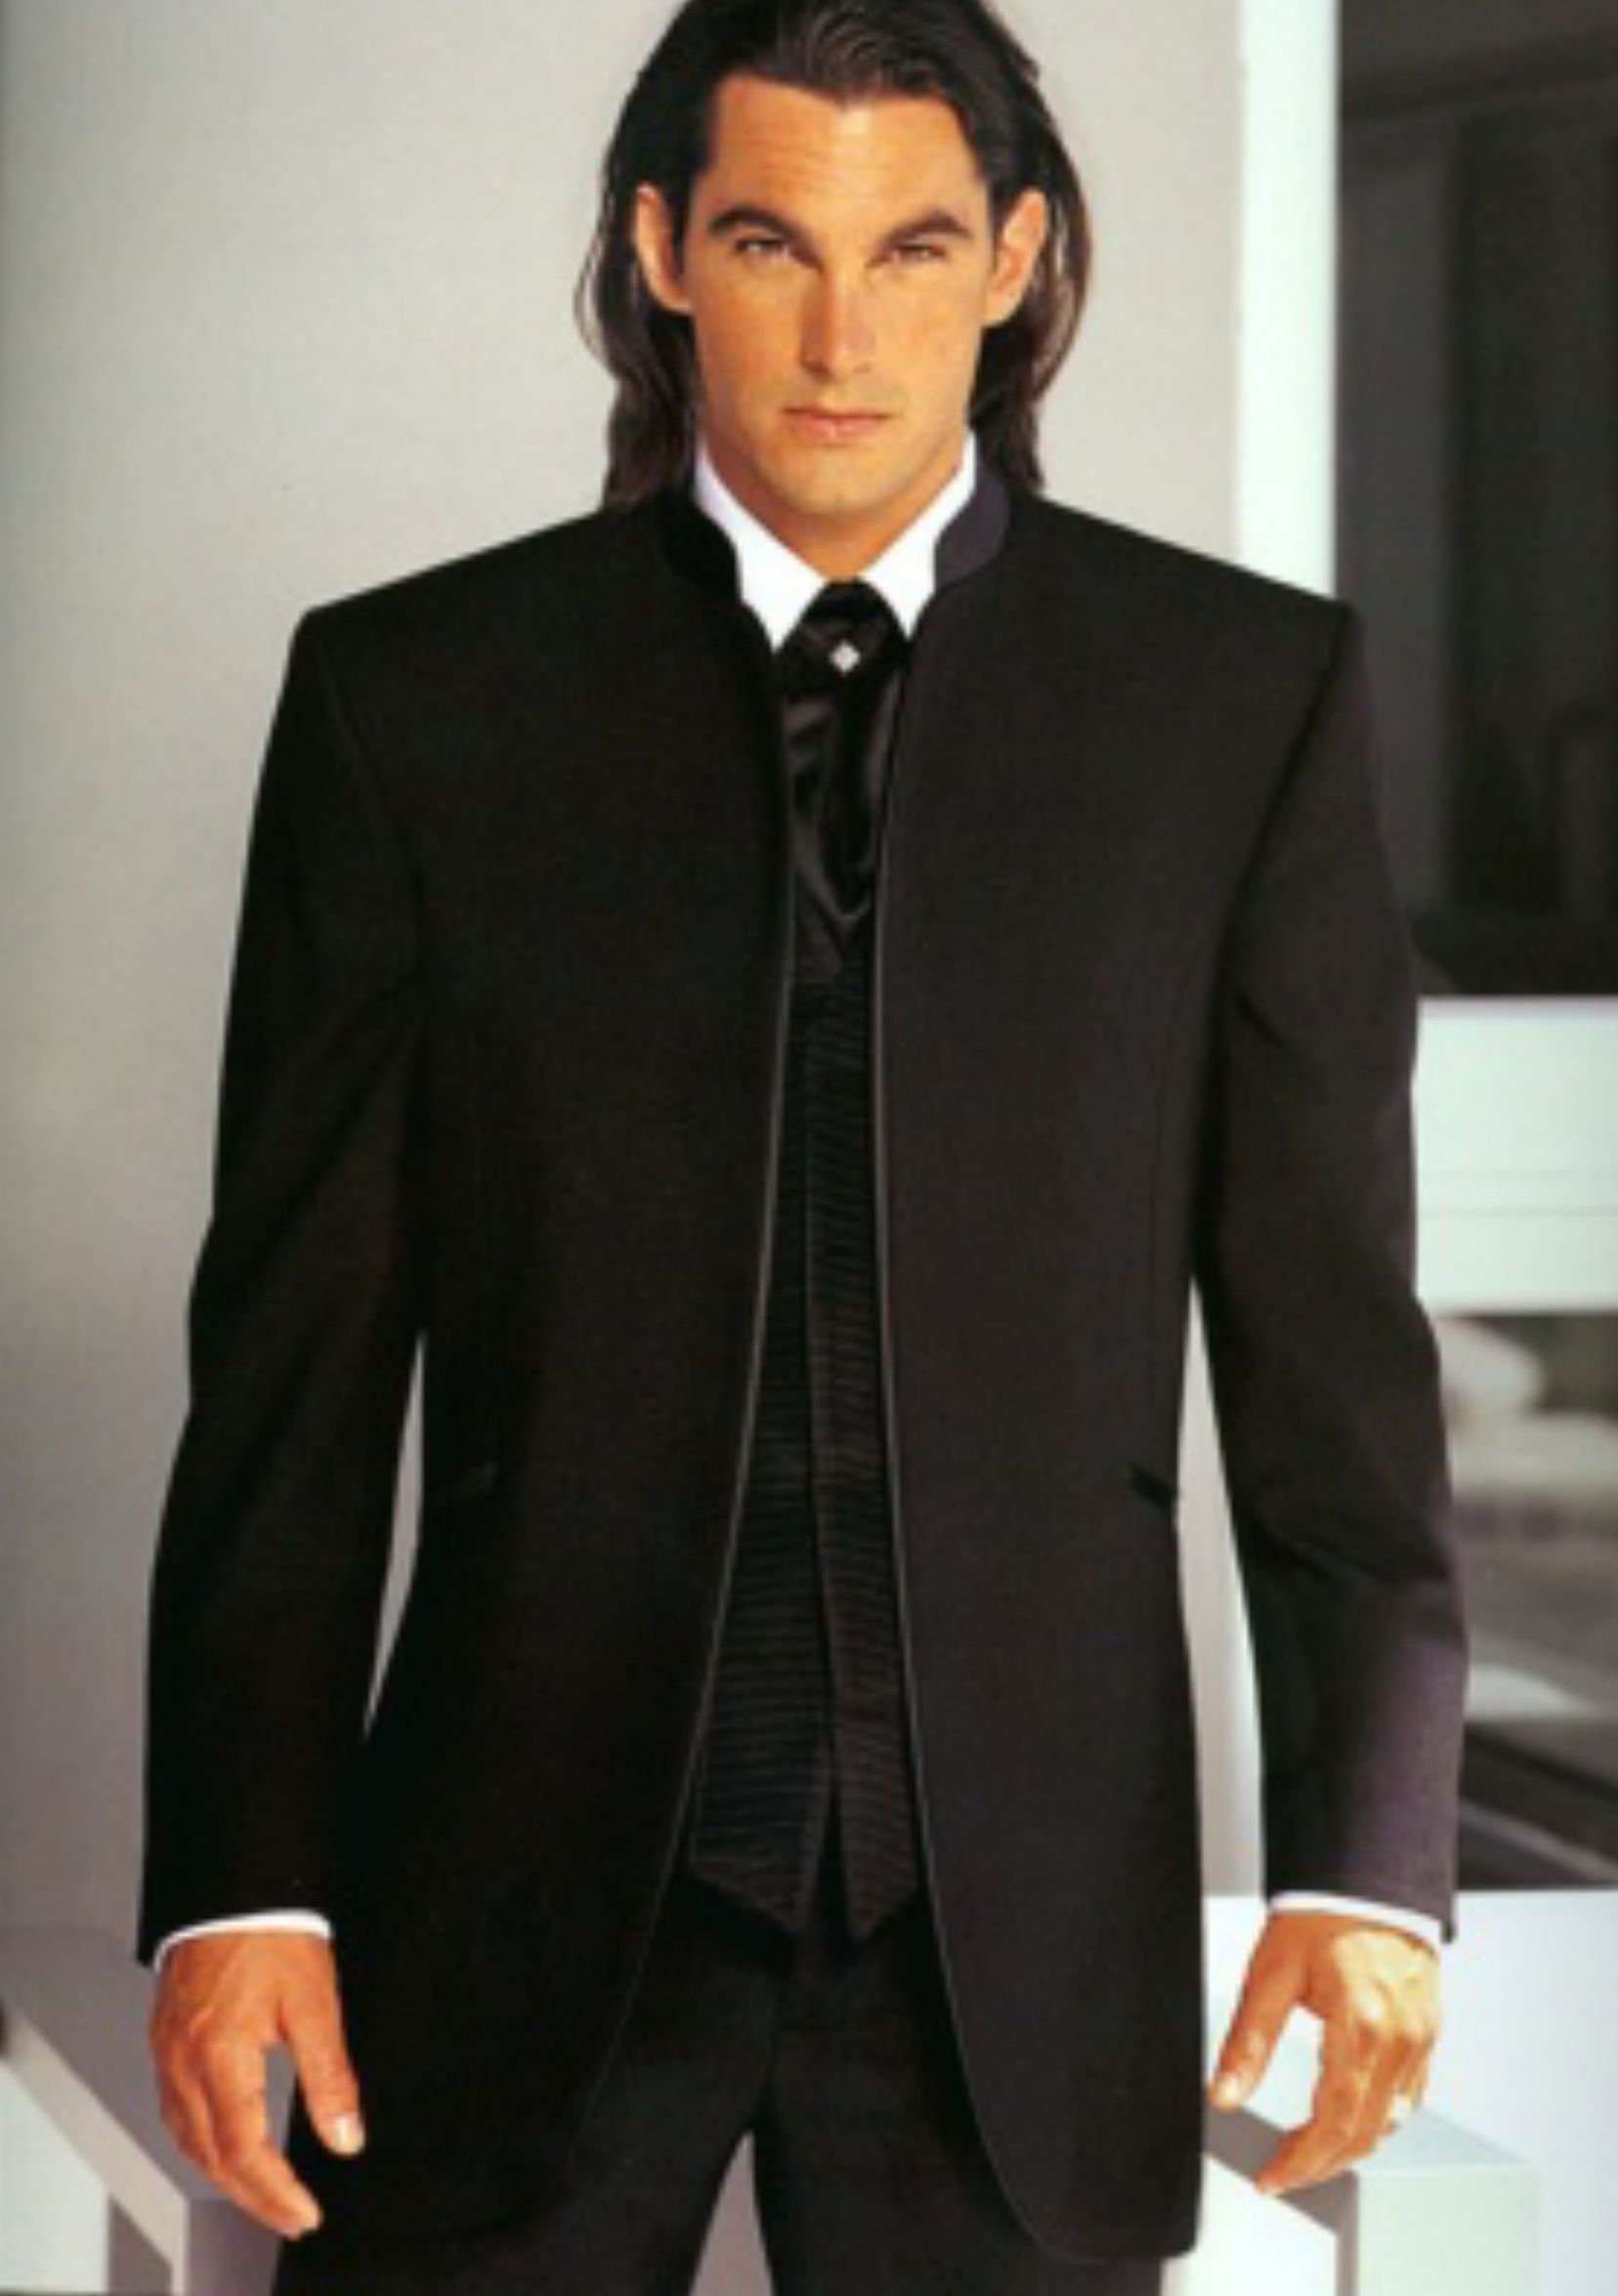 d786f1c08dbbb the tux you wore when we got married. Western Wear for Men